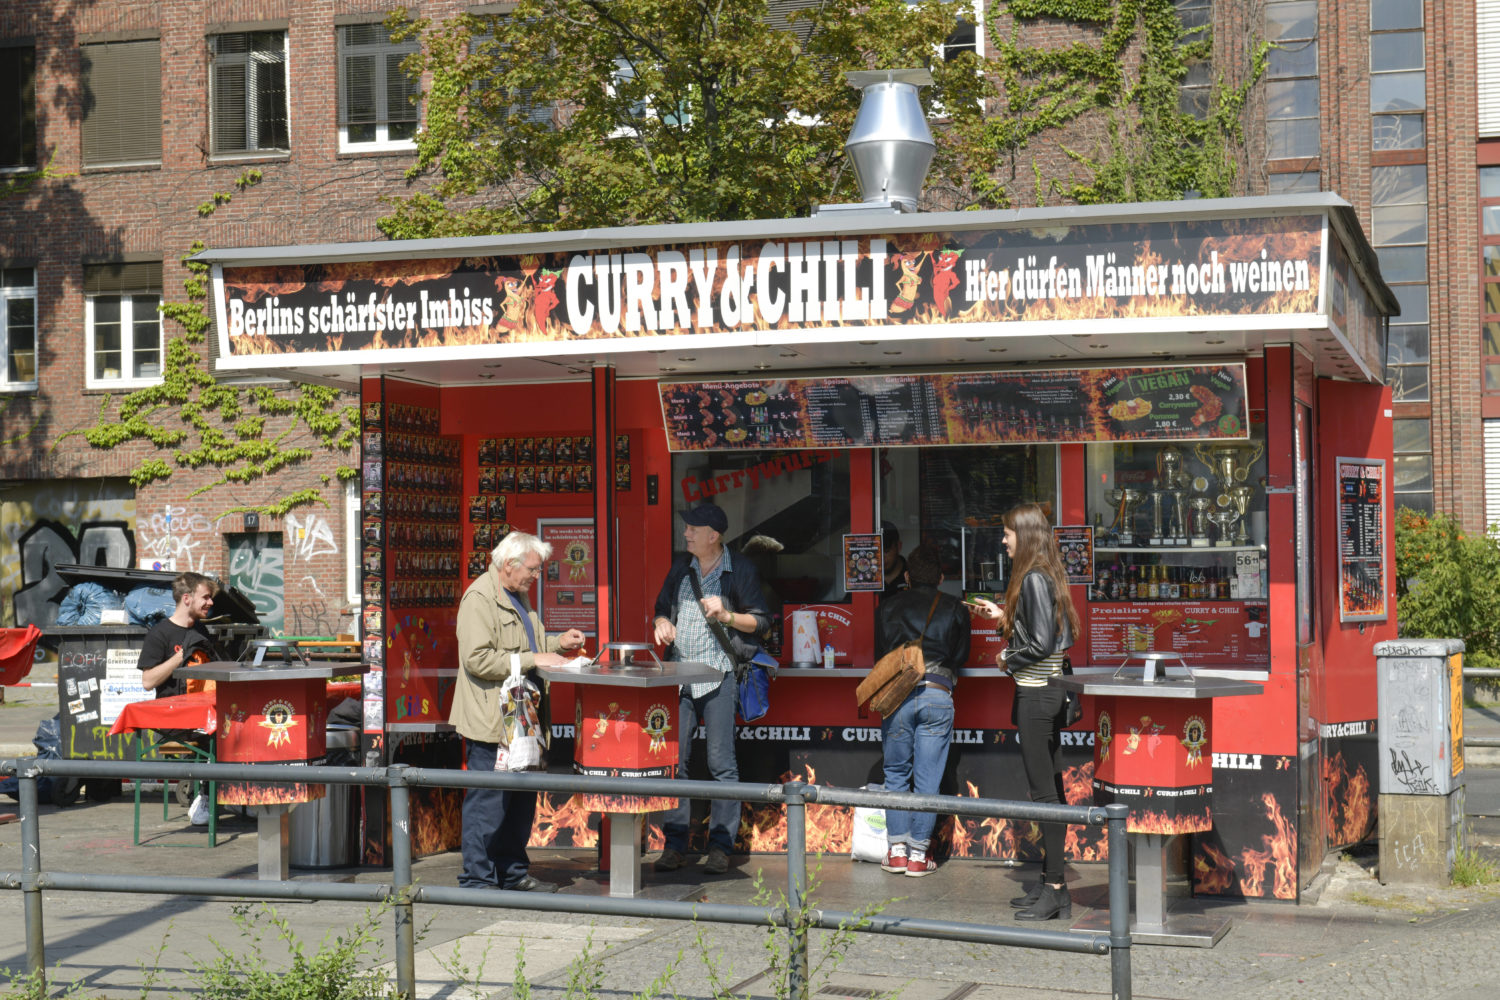 Currywurst in Berlin: Curry & Chili.